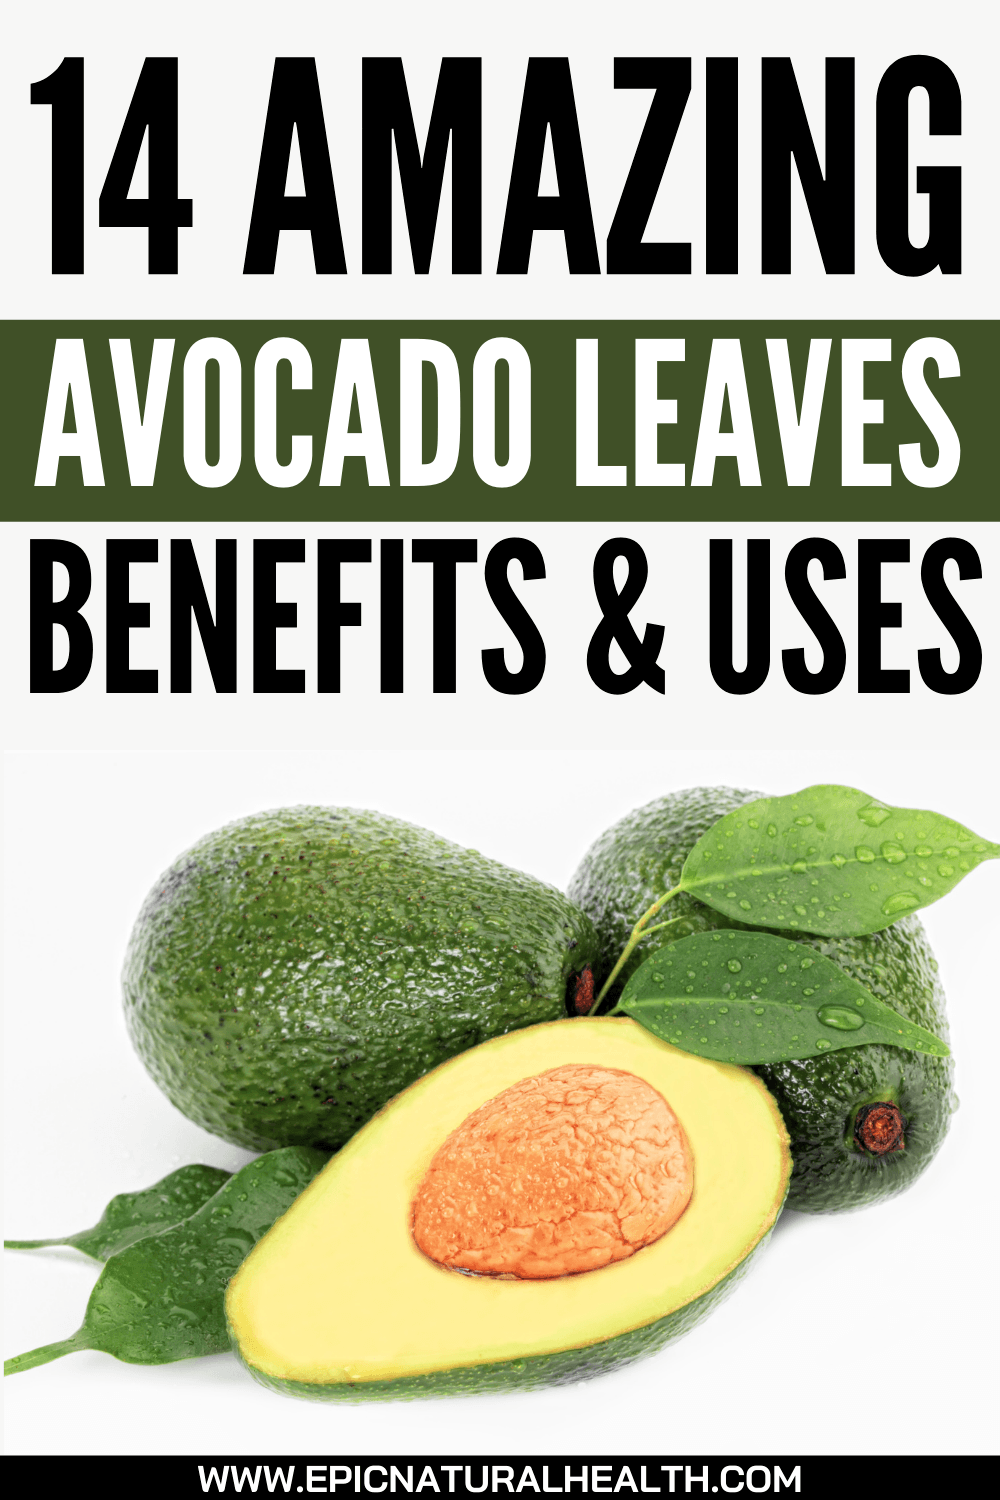 14 Amazing Avocado Leaves Benefits and Uses